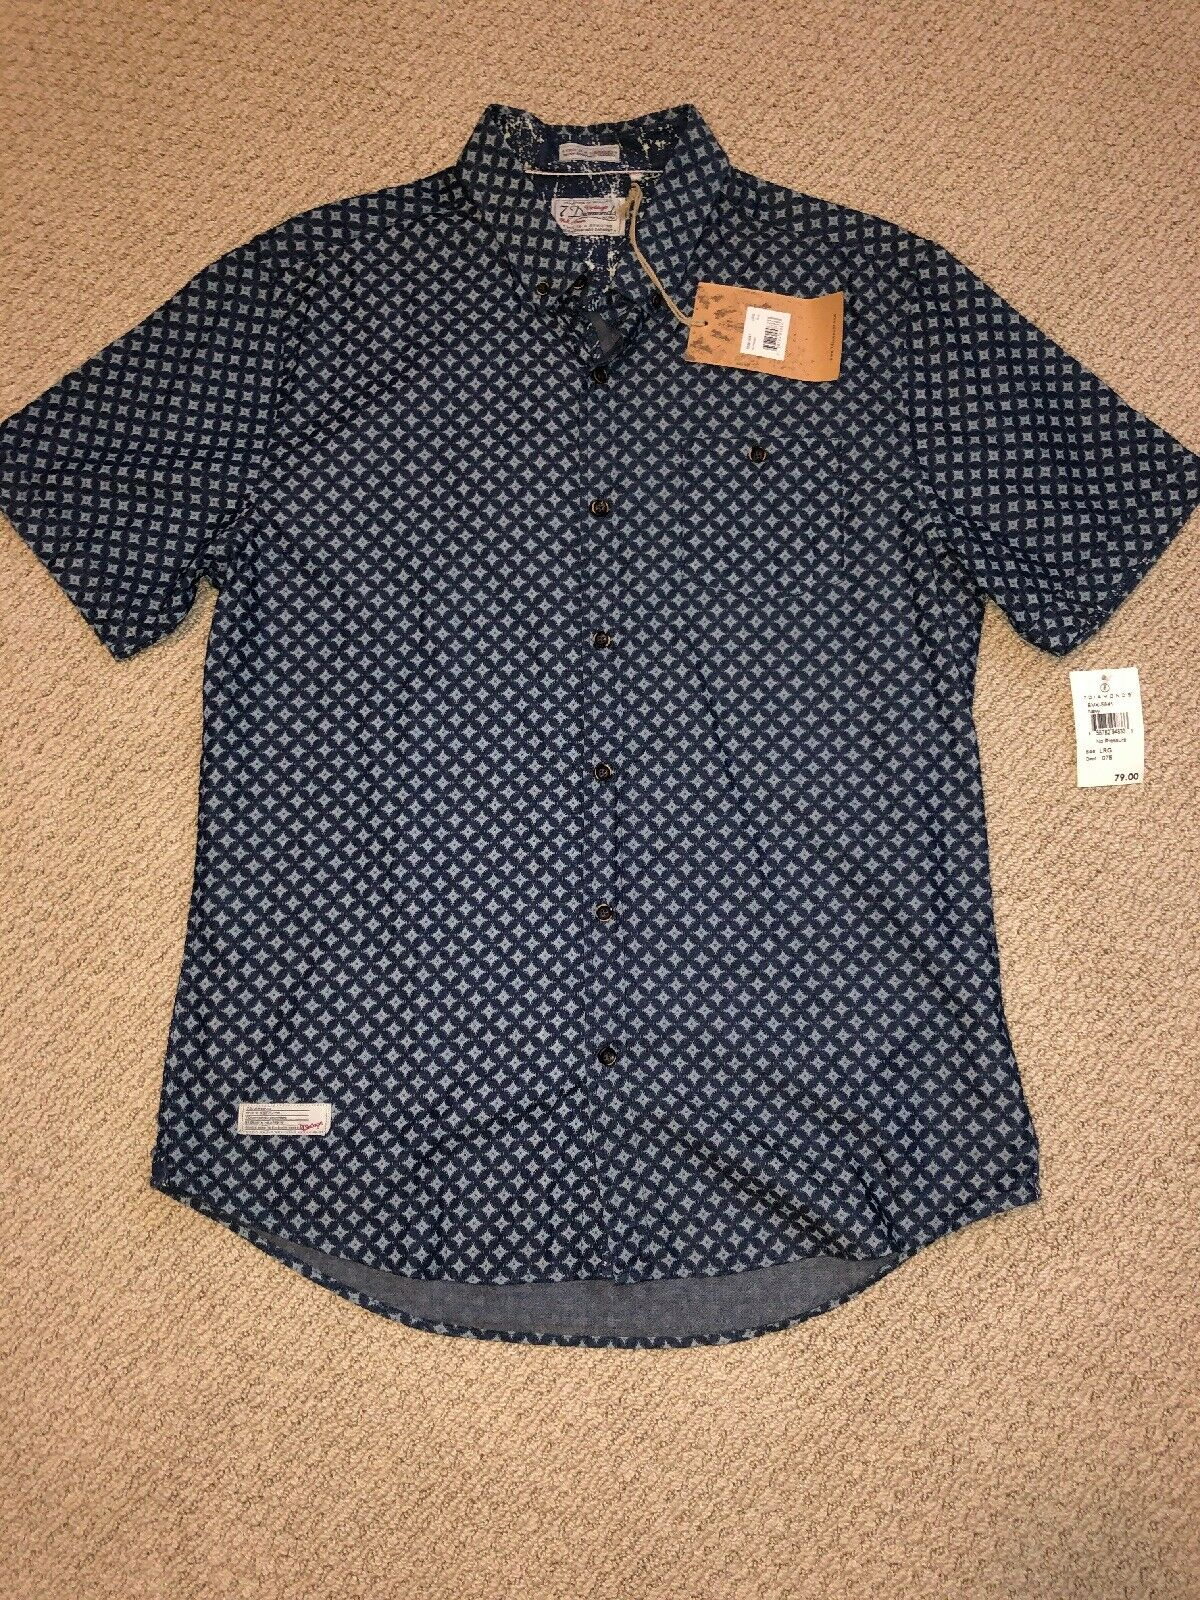 7 Diamonds Mens Aloha Trim Fit Short Sleeve Shirt Large L New  Navy S S NWT